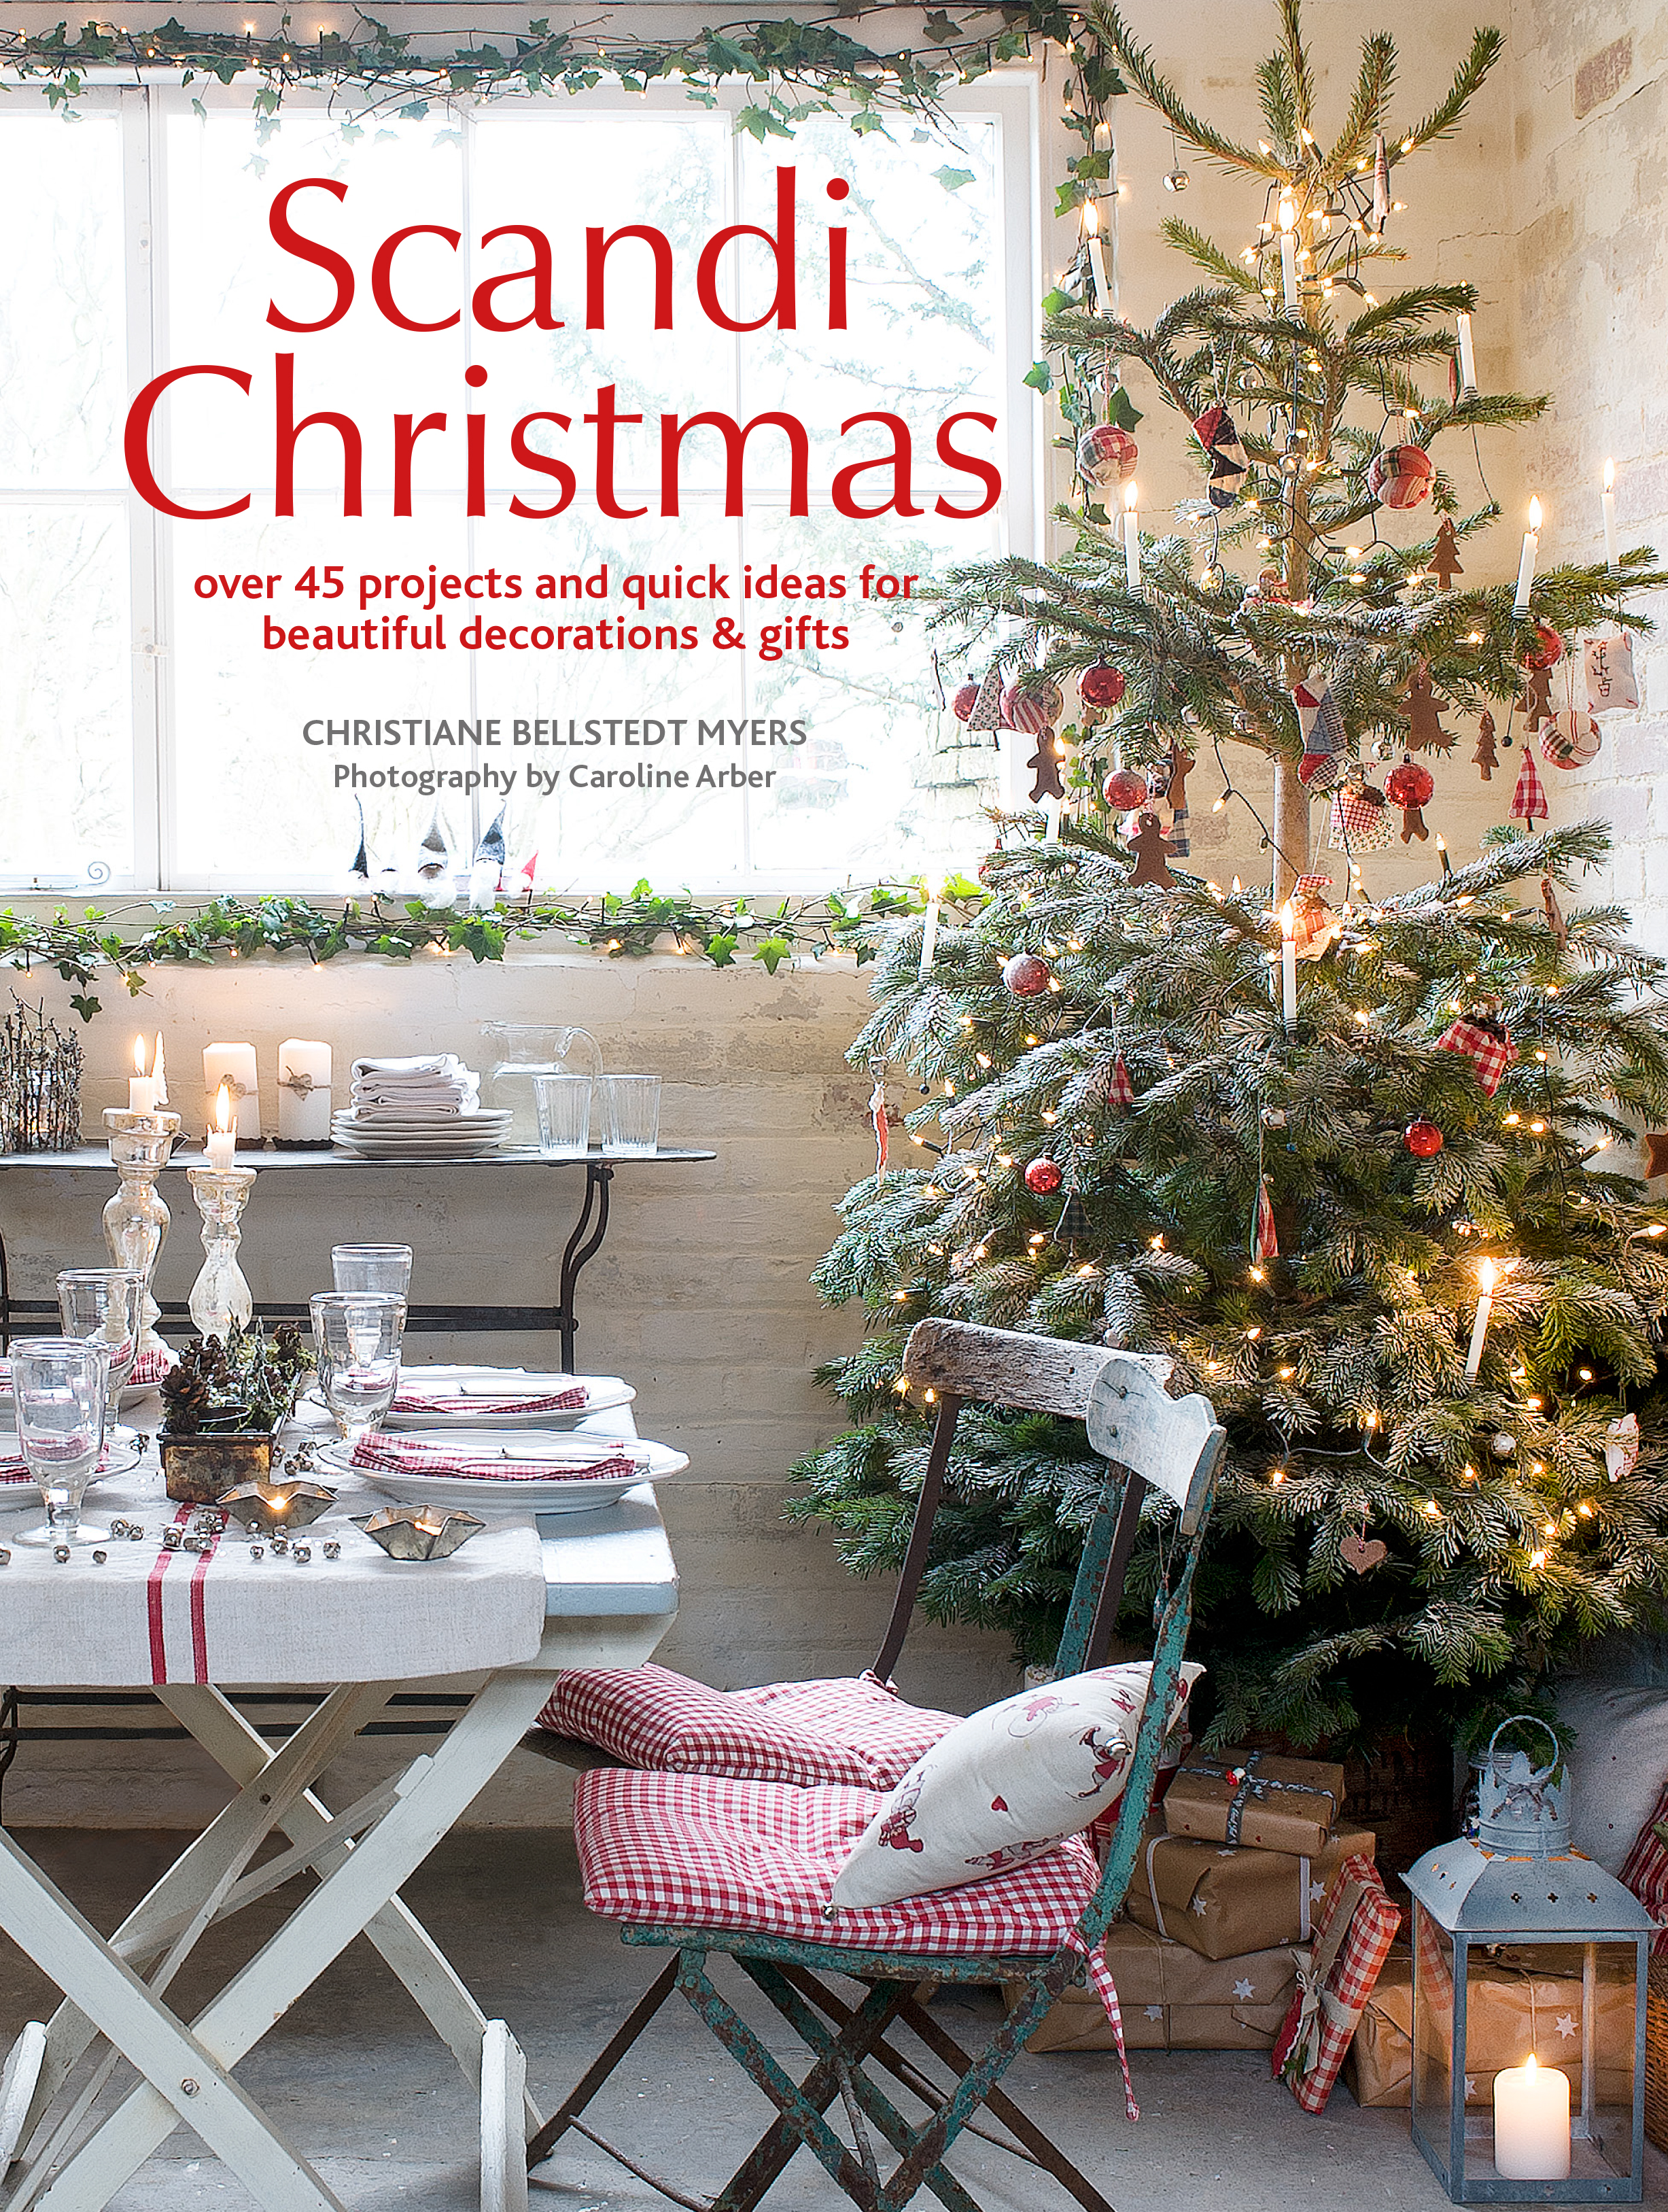 Scandi Christmas by Christiane Bellstedt Myers